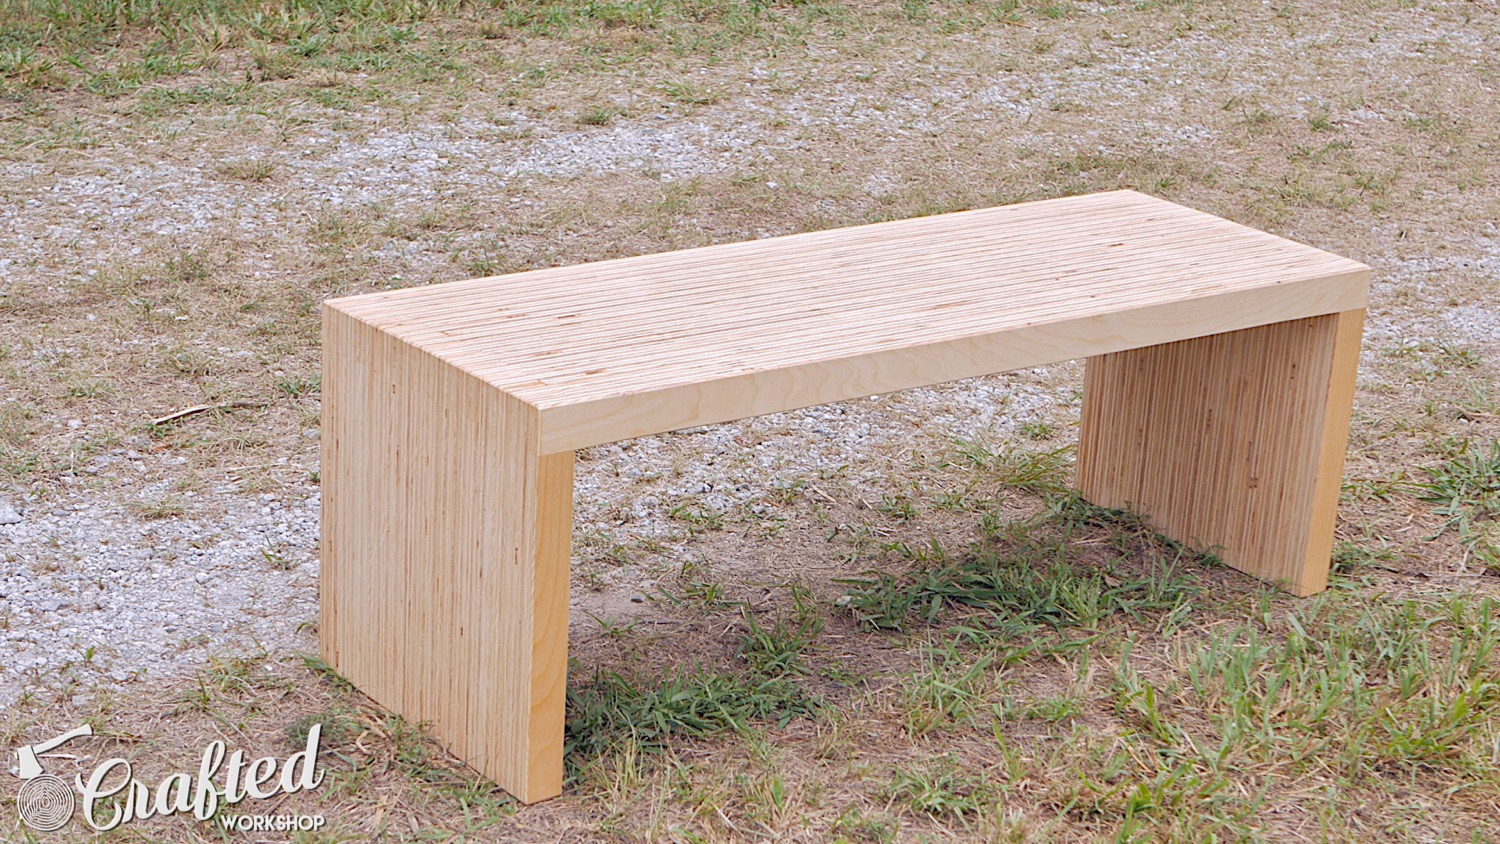 DIY Plywood Coffee Table Made With One Sheet Of Plywood ...